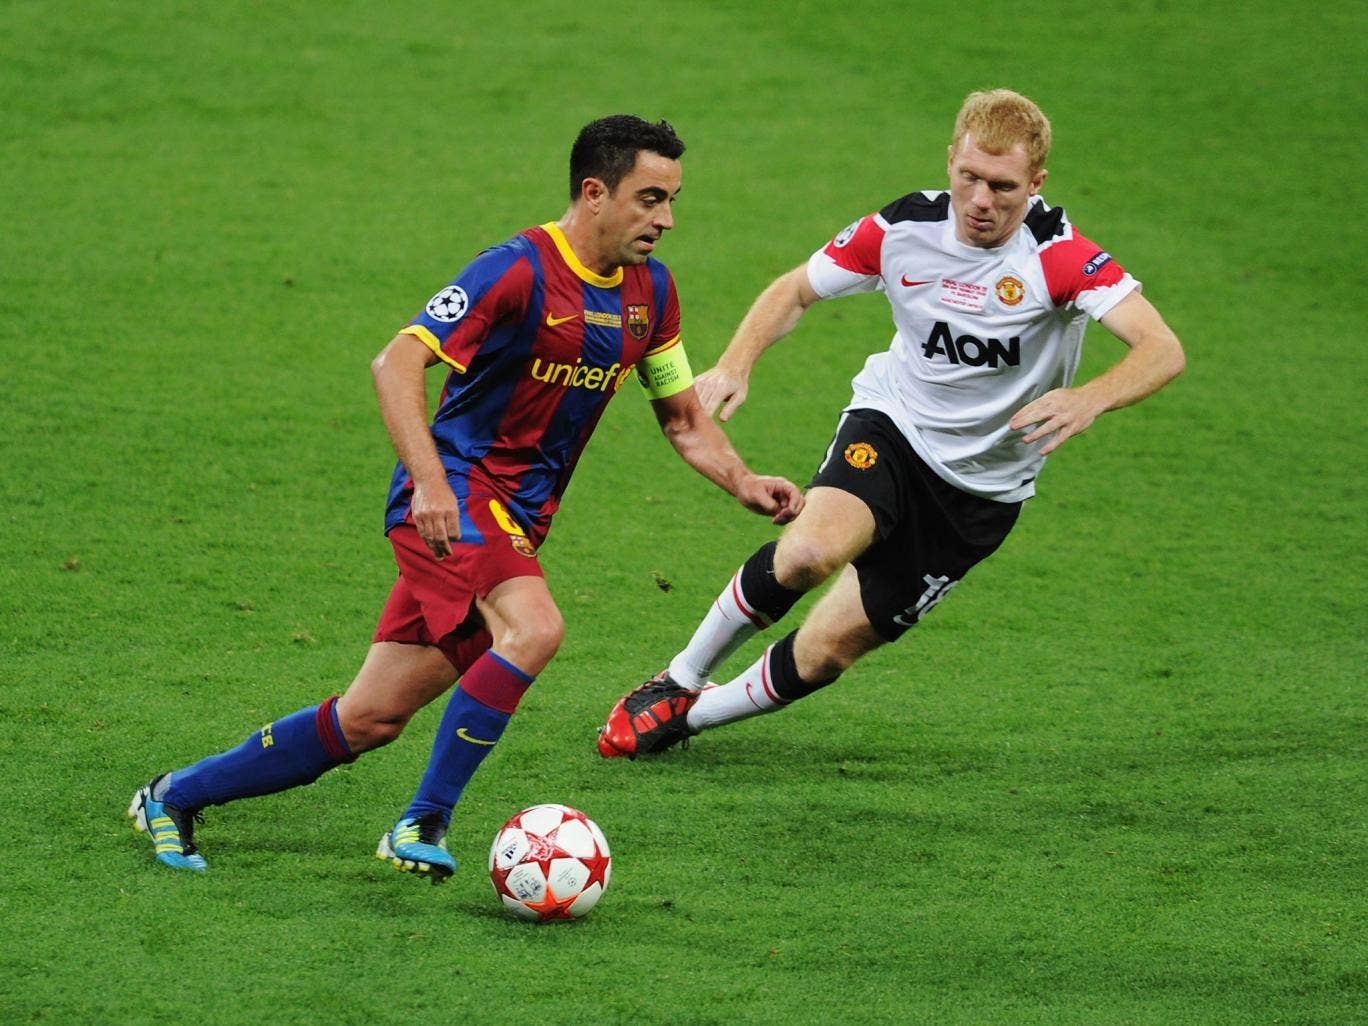 Xavi has said the 'one small regret' of his career is not playing with Paul Scholes